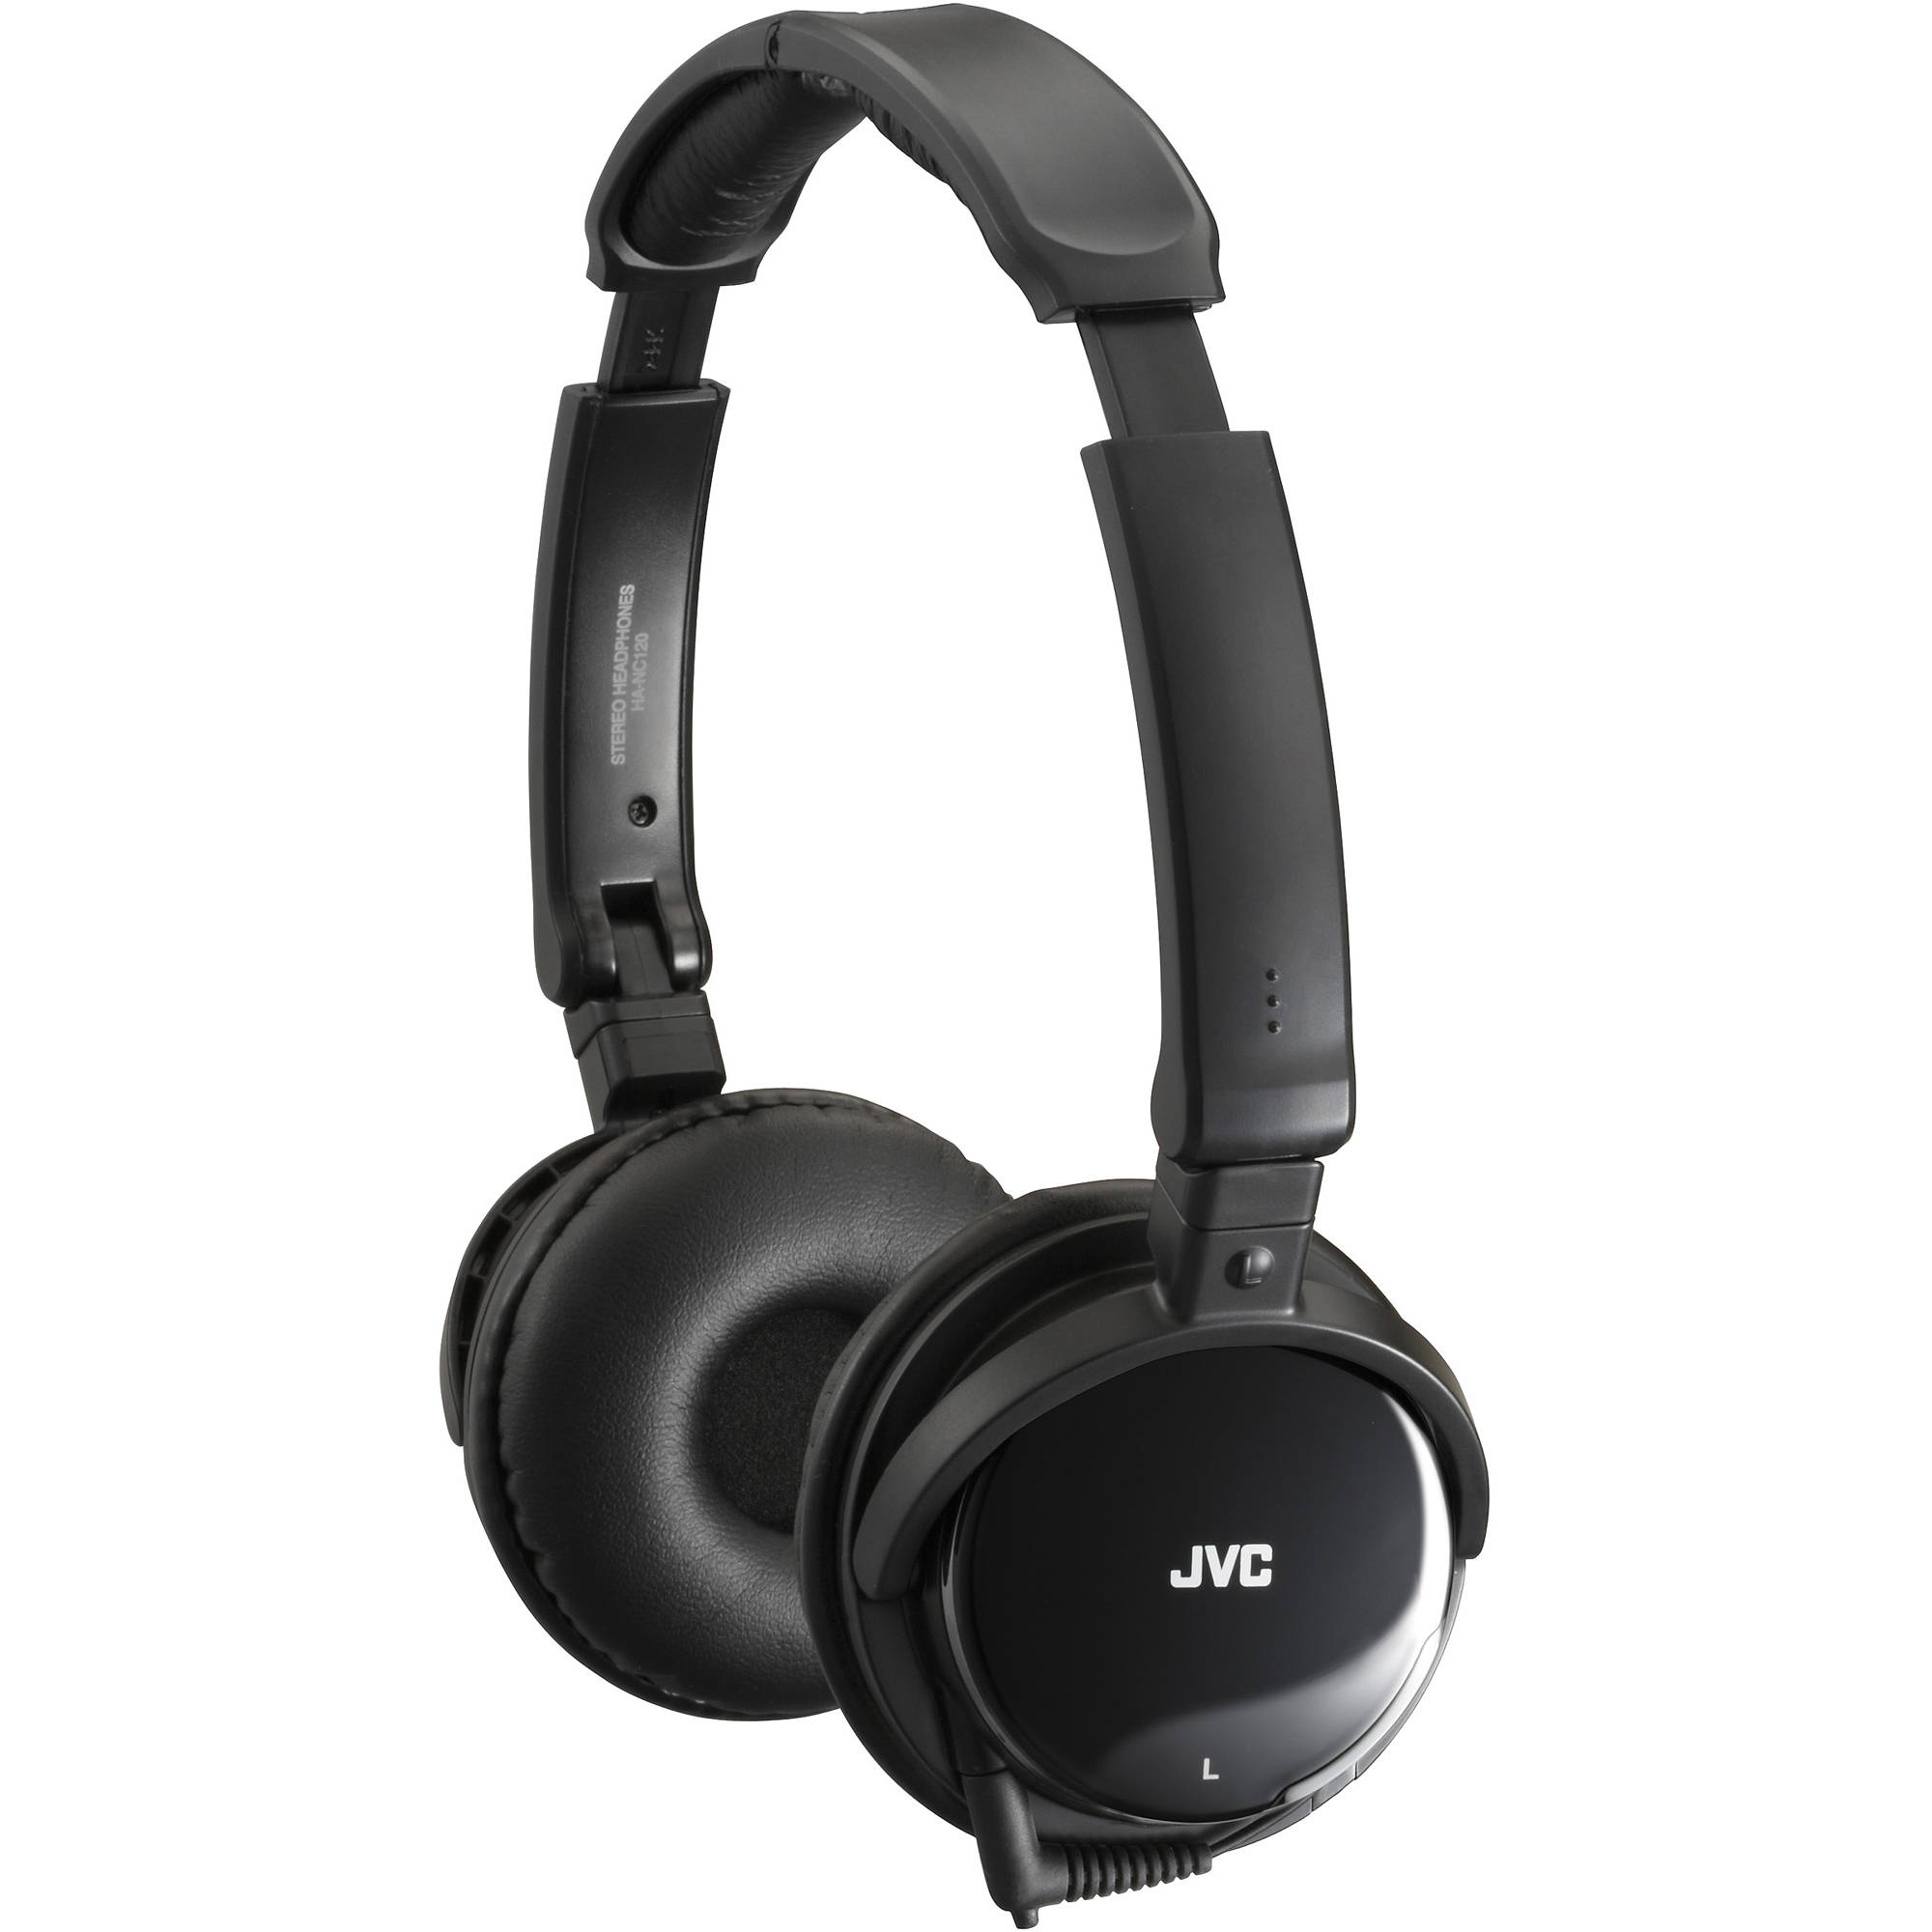 jvc in ear headphones review